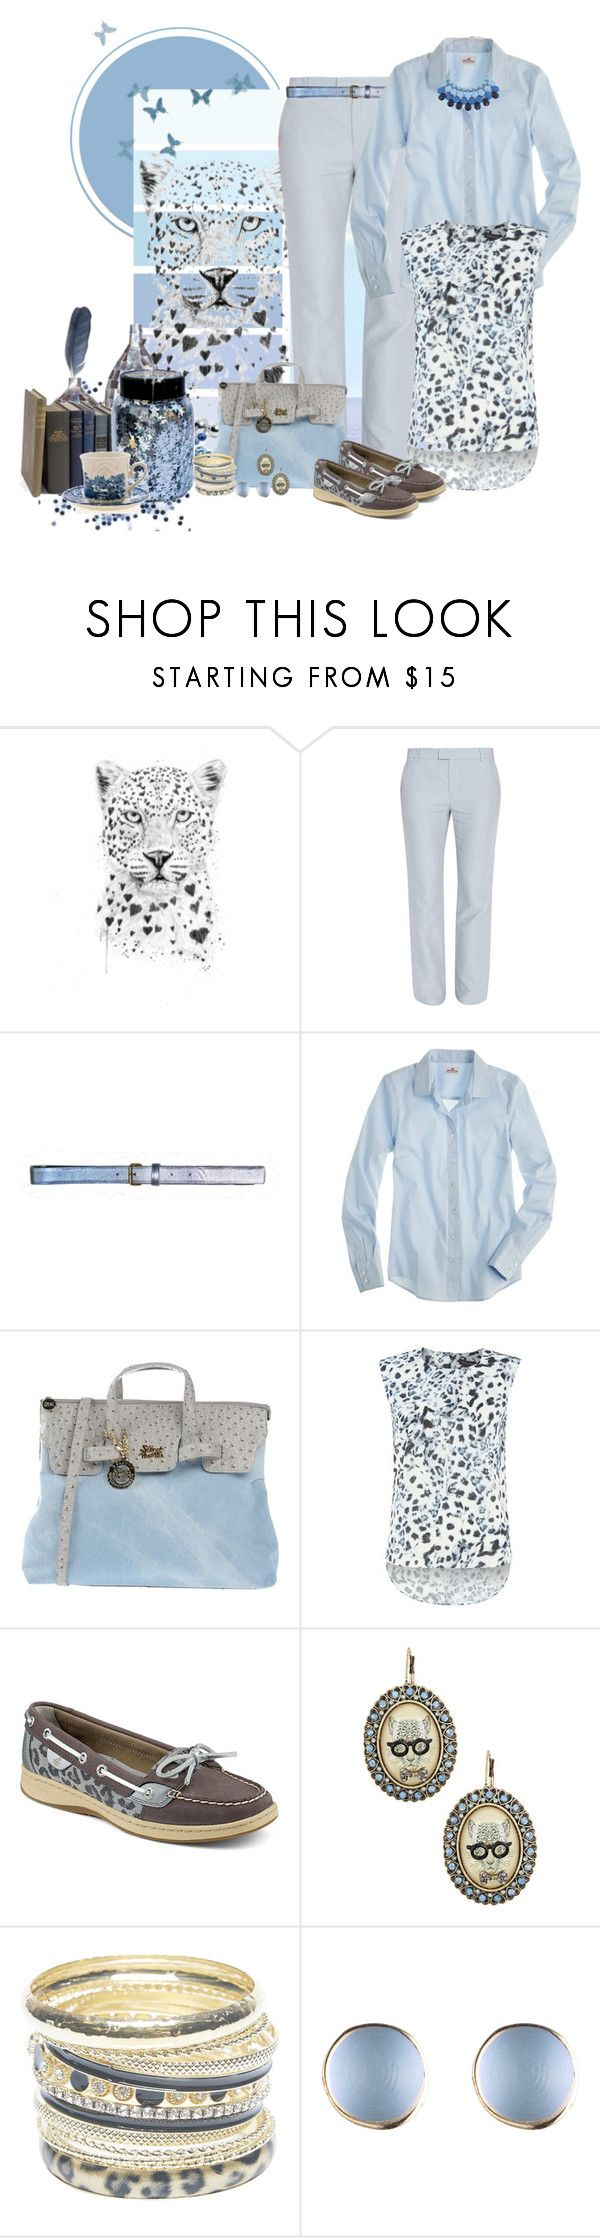 """Untitled #339"" by jessy-james83 ❤ liked on Polyvore featuring Band of Outsiders, Cynthia Rowley, J.Crew, Secret PonPon, Pied a Terre, Sperry, Betsey Johnson, Wet Seal and Chicnova Fashion"